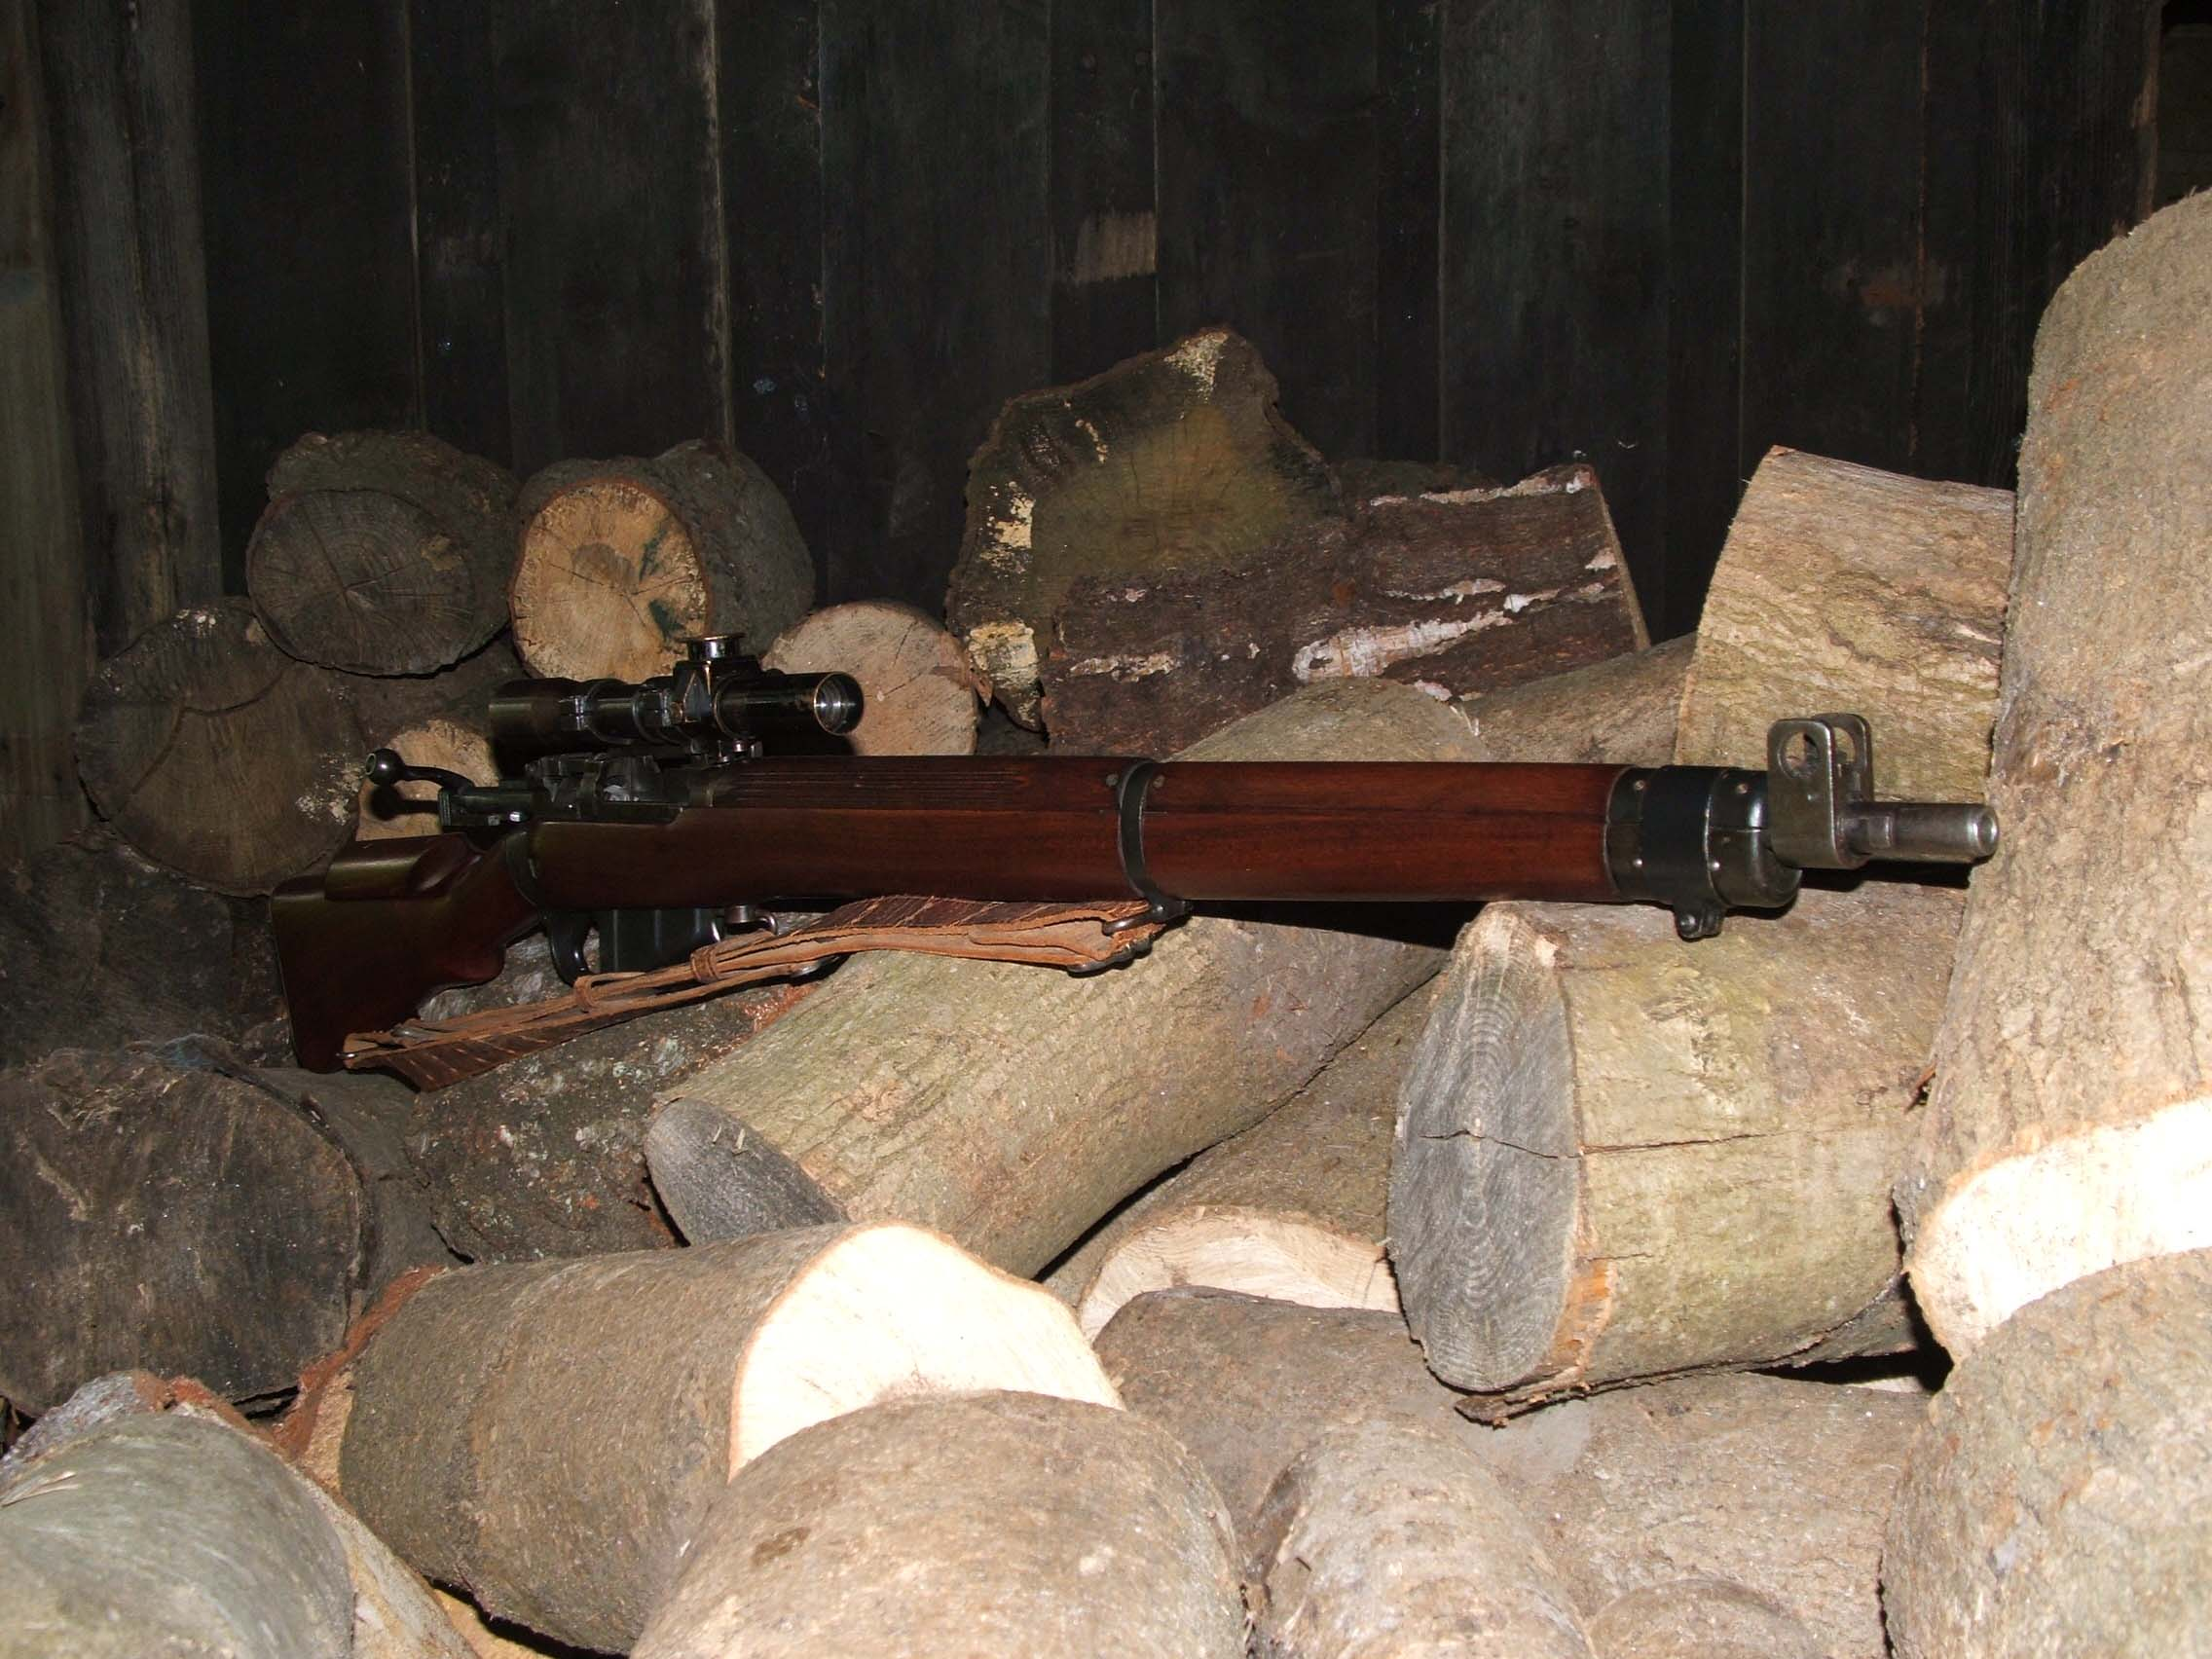 303 British Sniper Rifles http://www.kirkemmerich.co.uk/past-sales/rifles-requiring-a-firearms-license/british-rifles-sold/303-no-4-t-sniper-rifle/